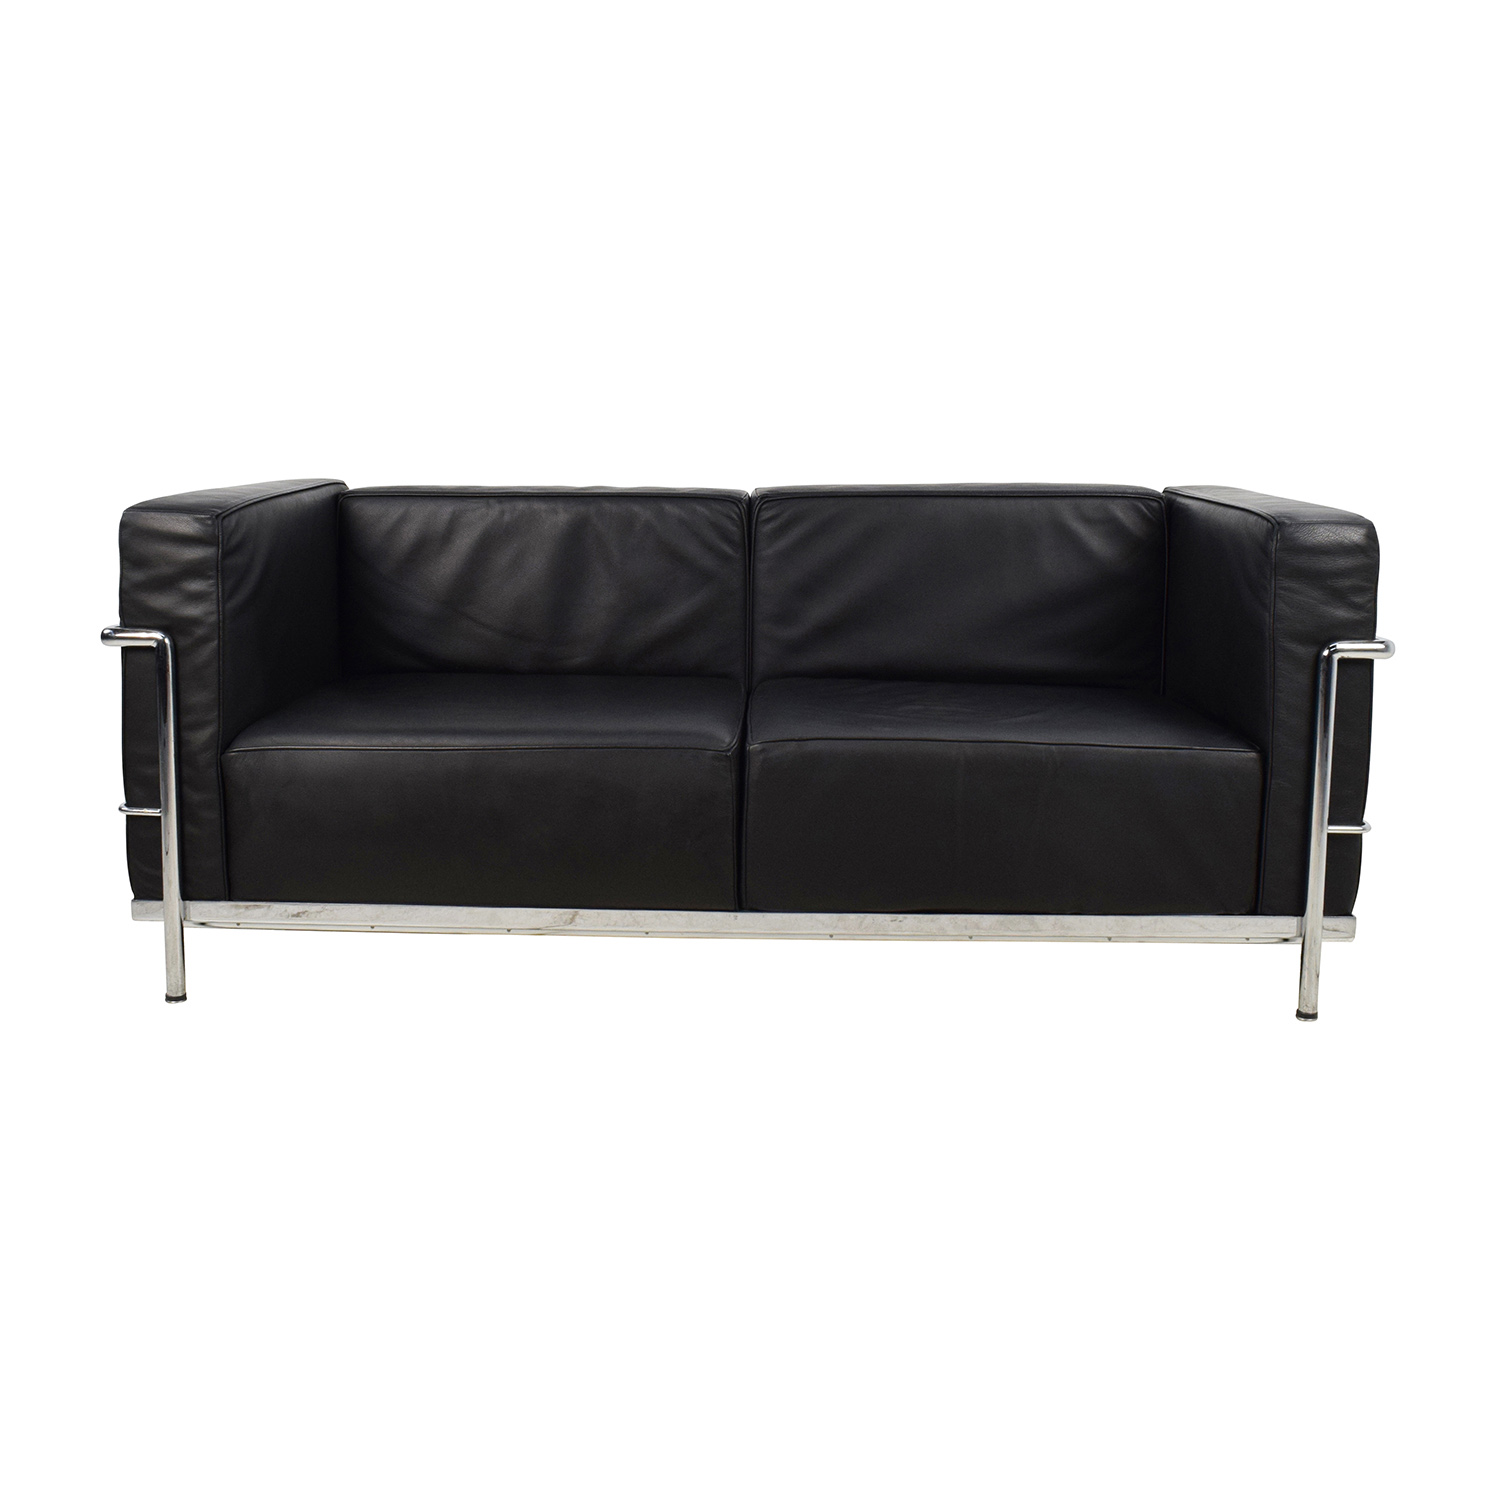 Design Within Reach Design Within Reach LC3 Grande Modele Two Seat Black Leather Sofa second hand